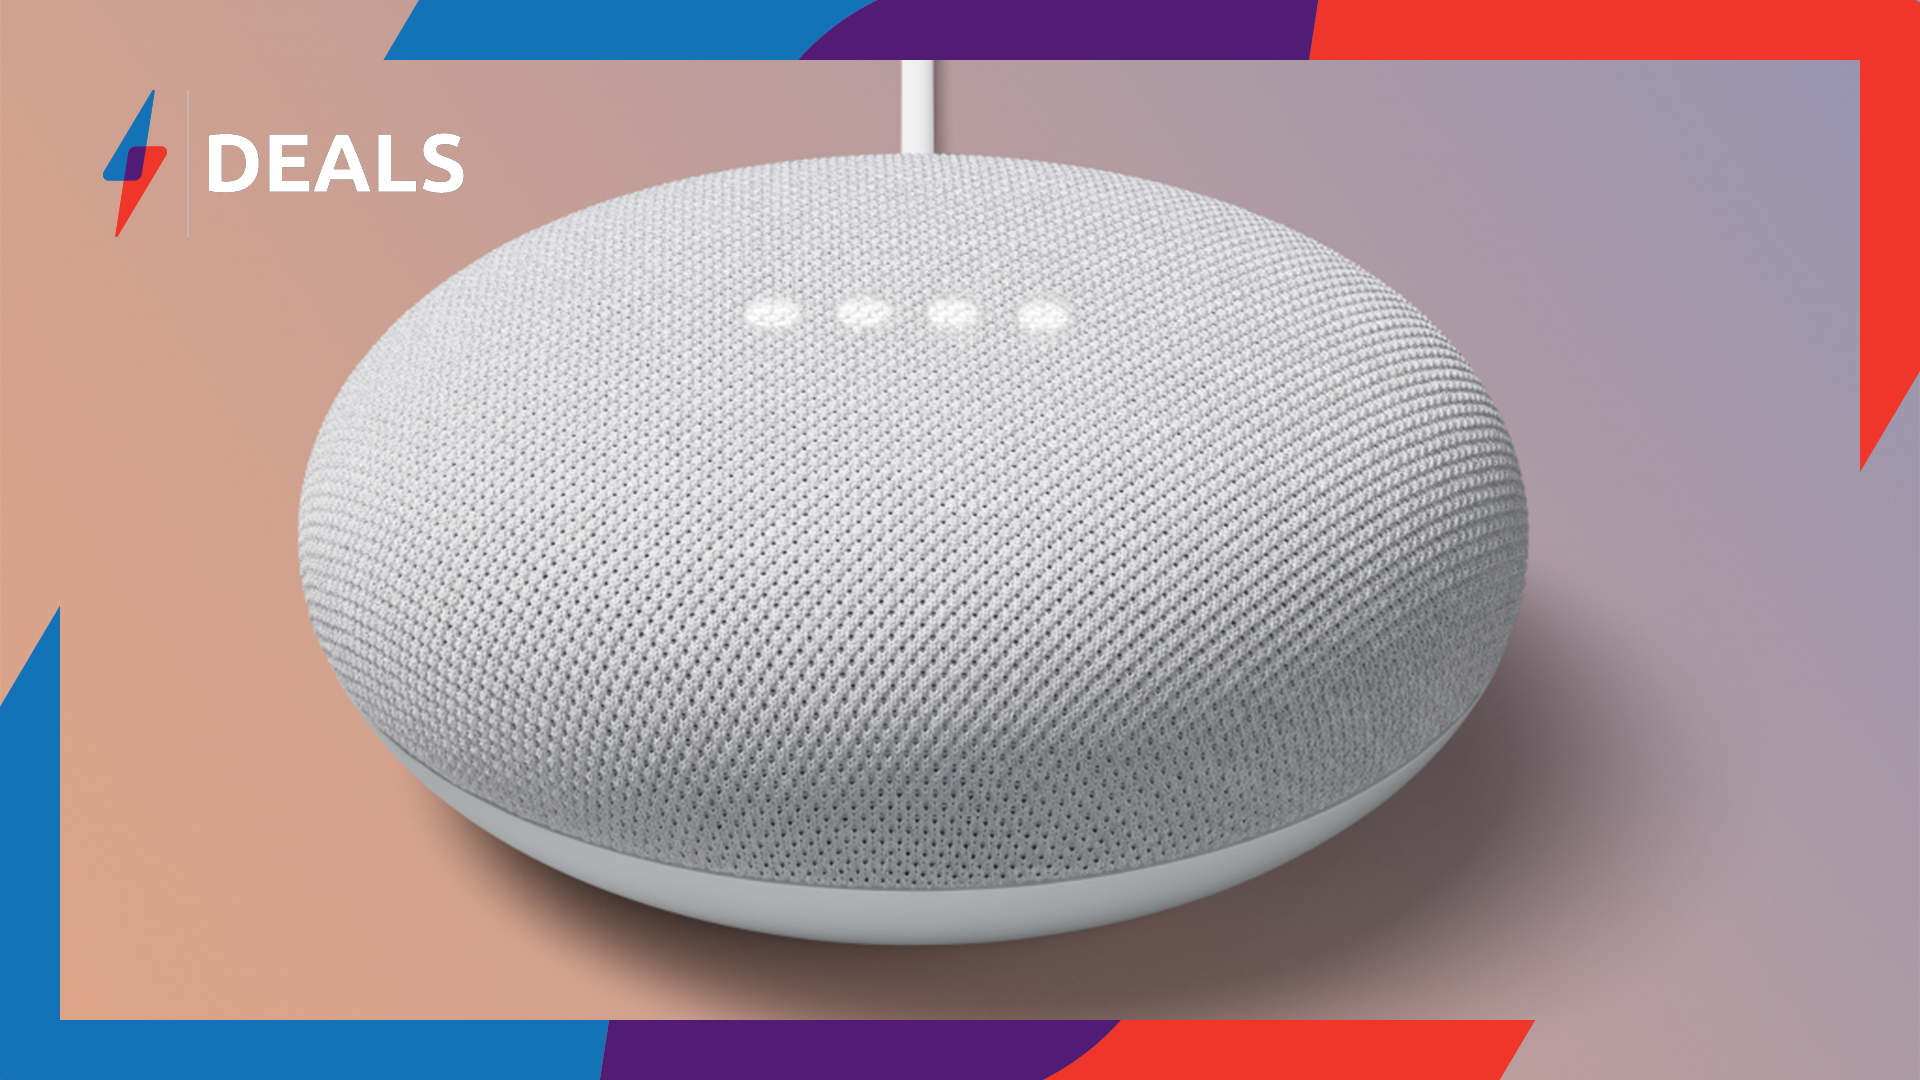 Get a free Philips Hue bulb in this Google Nest Mini smart home bundle